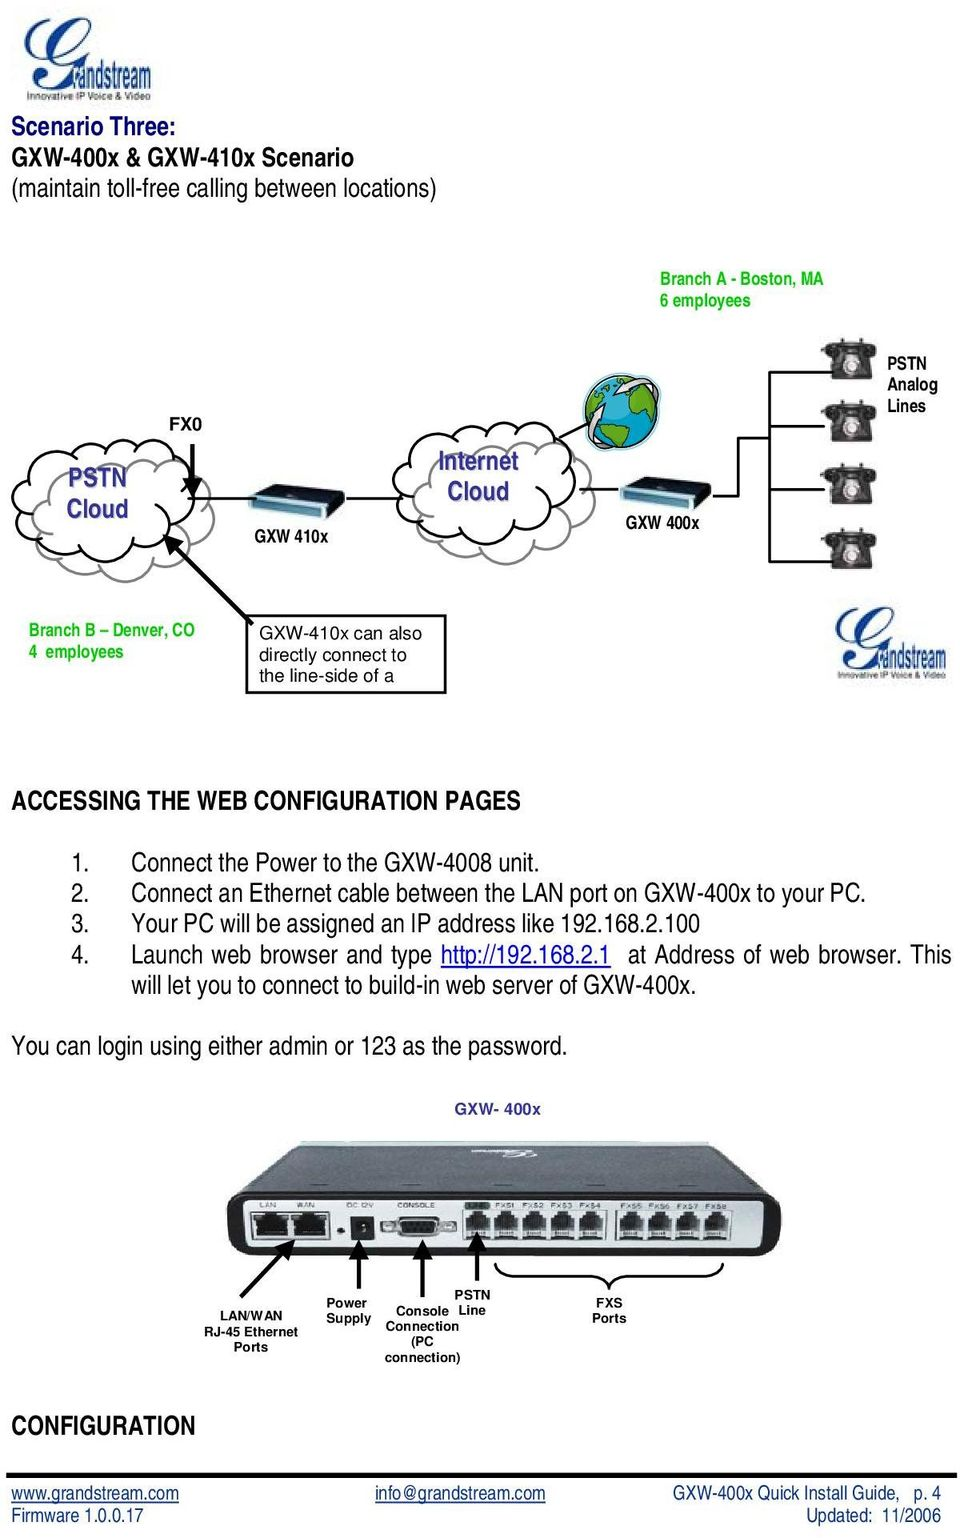 Connect an Ethernet cable between the LAN port on GXW-400x to your PC. 3. Your PC will be assigned an IP address like 192.168.2.100 4. Launch web browser and type http://192.168.2.1 at Address of web browser.